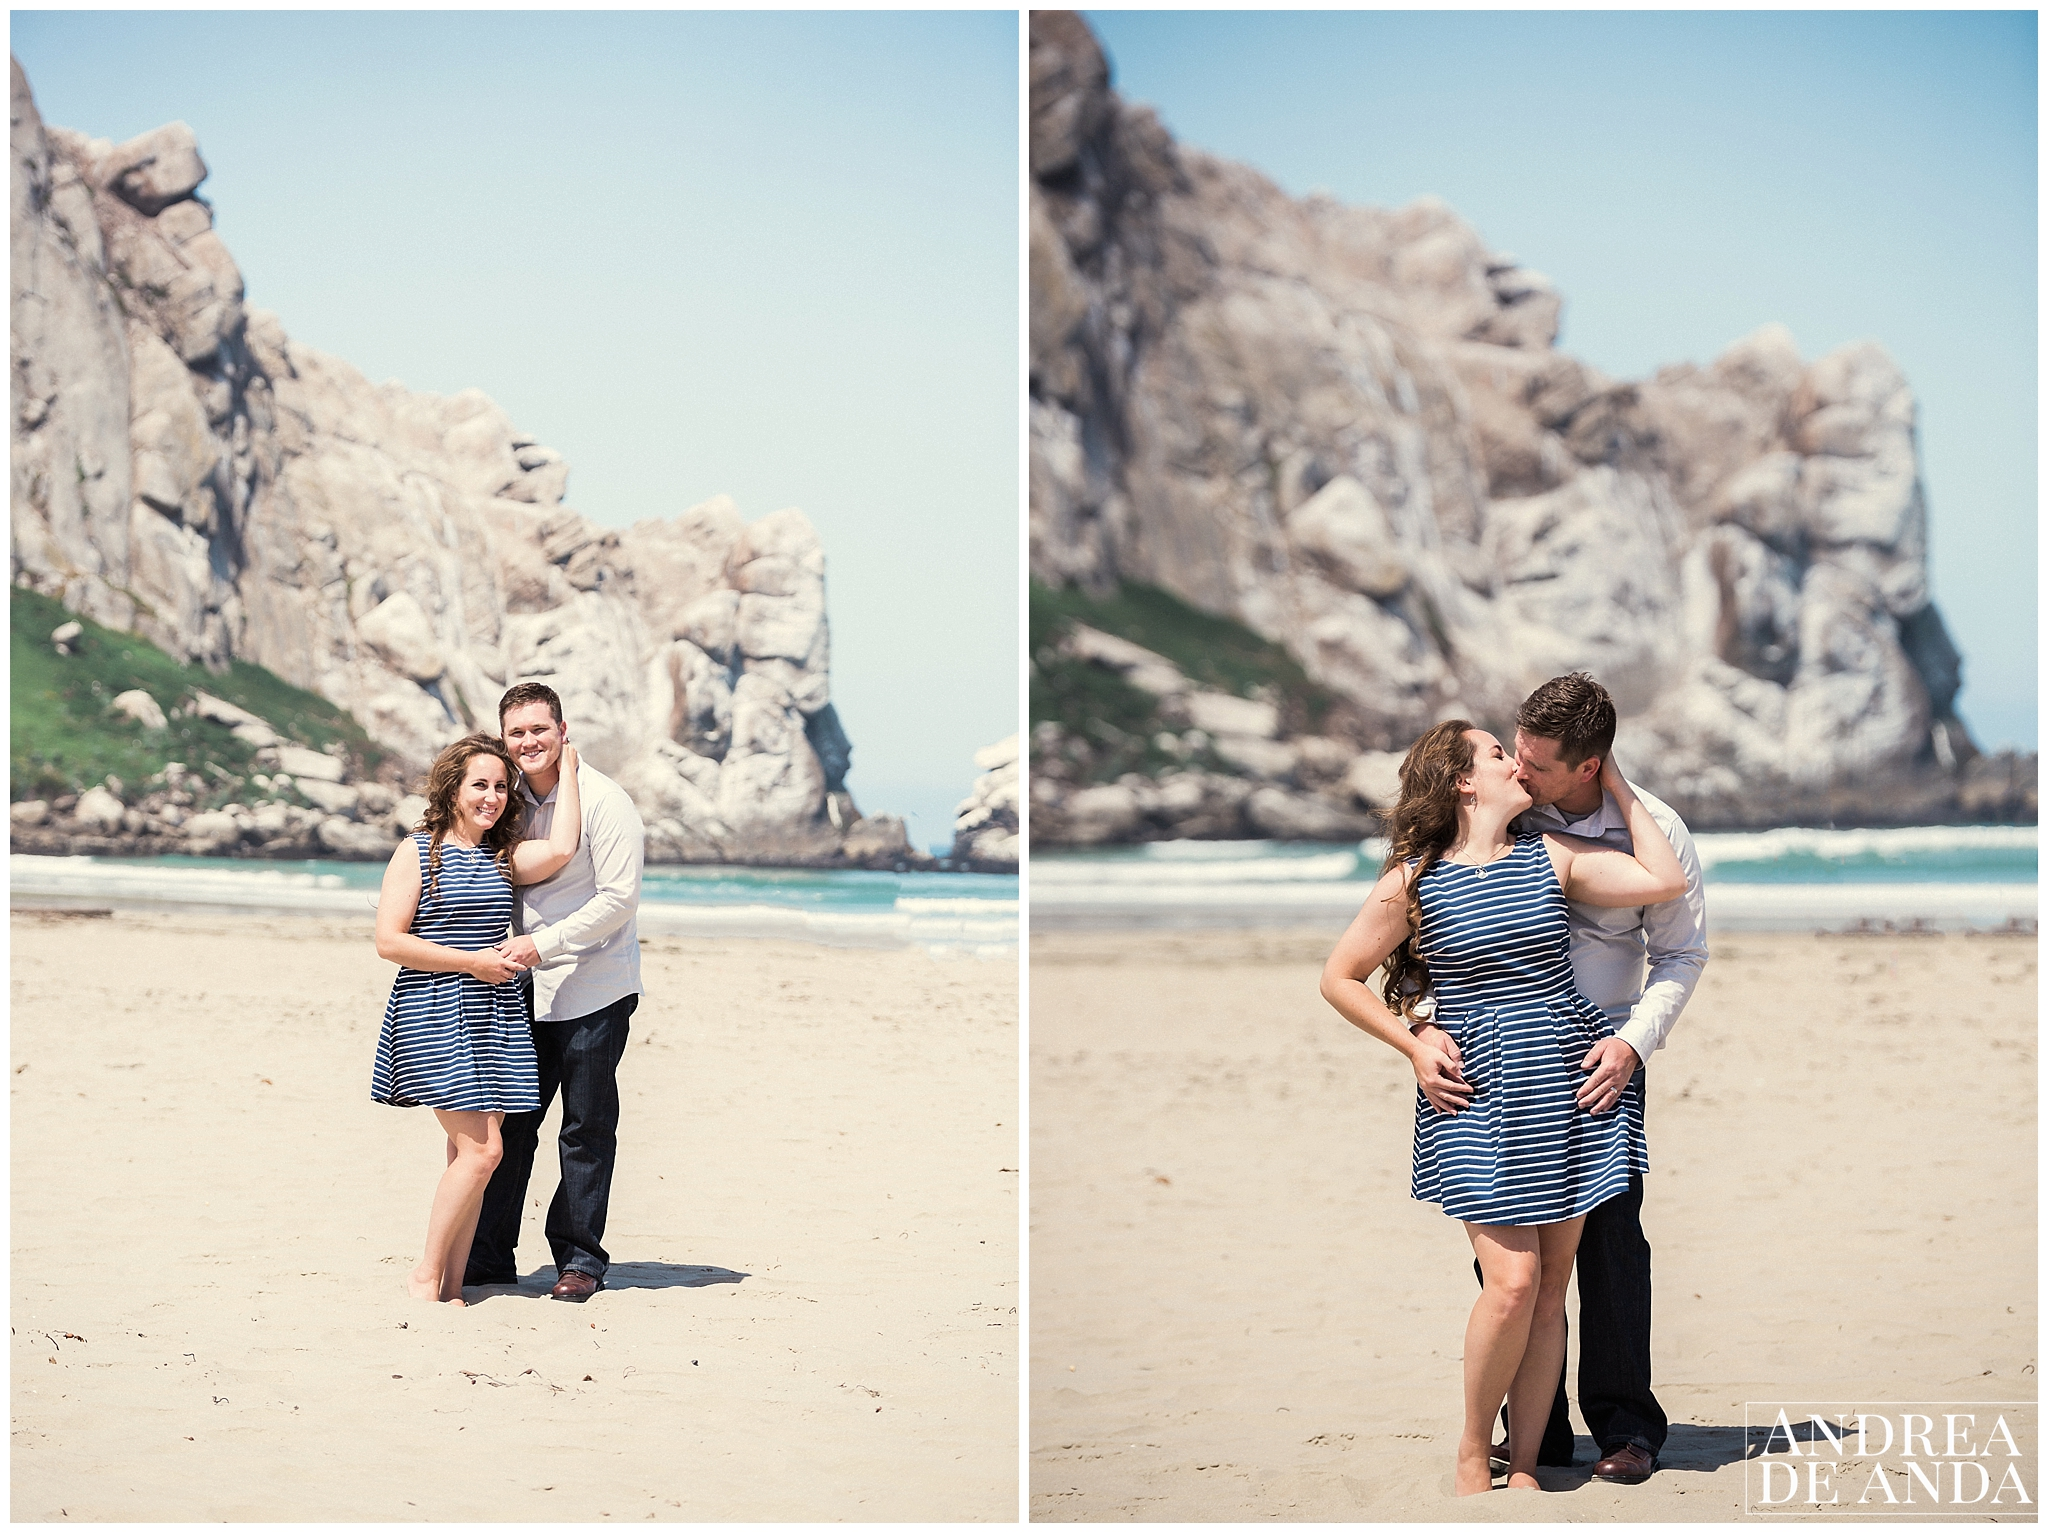 Morro Bay engagement session_ Andrea de Anda Photography__0015.jpg